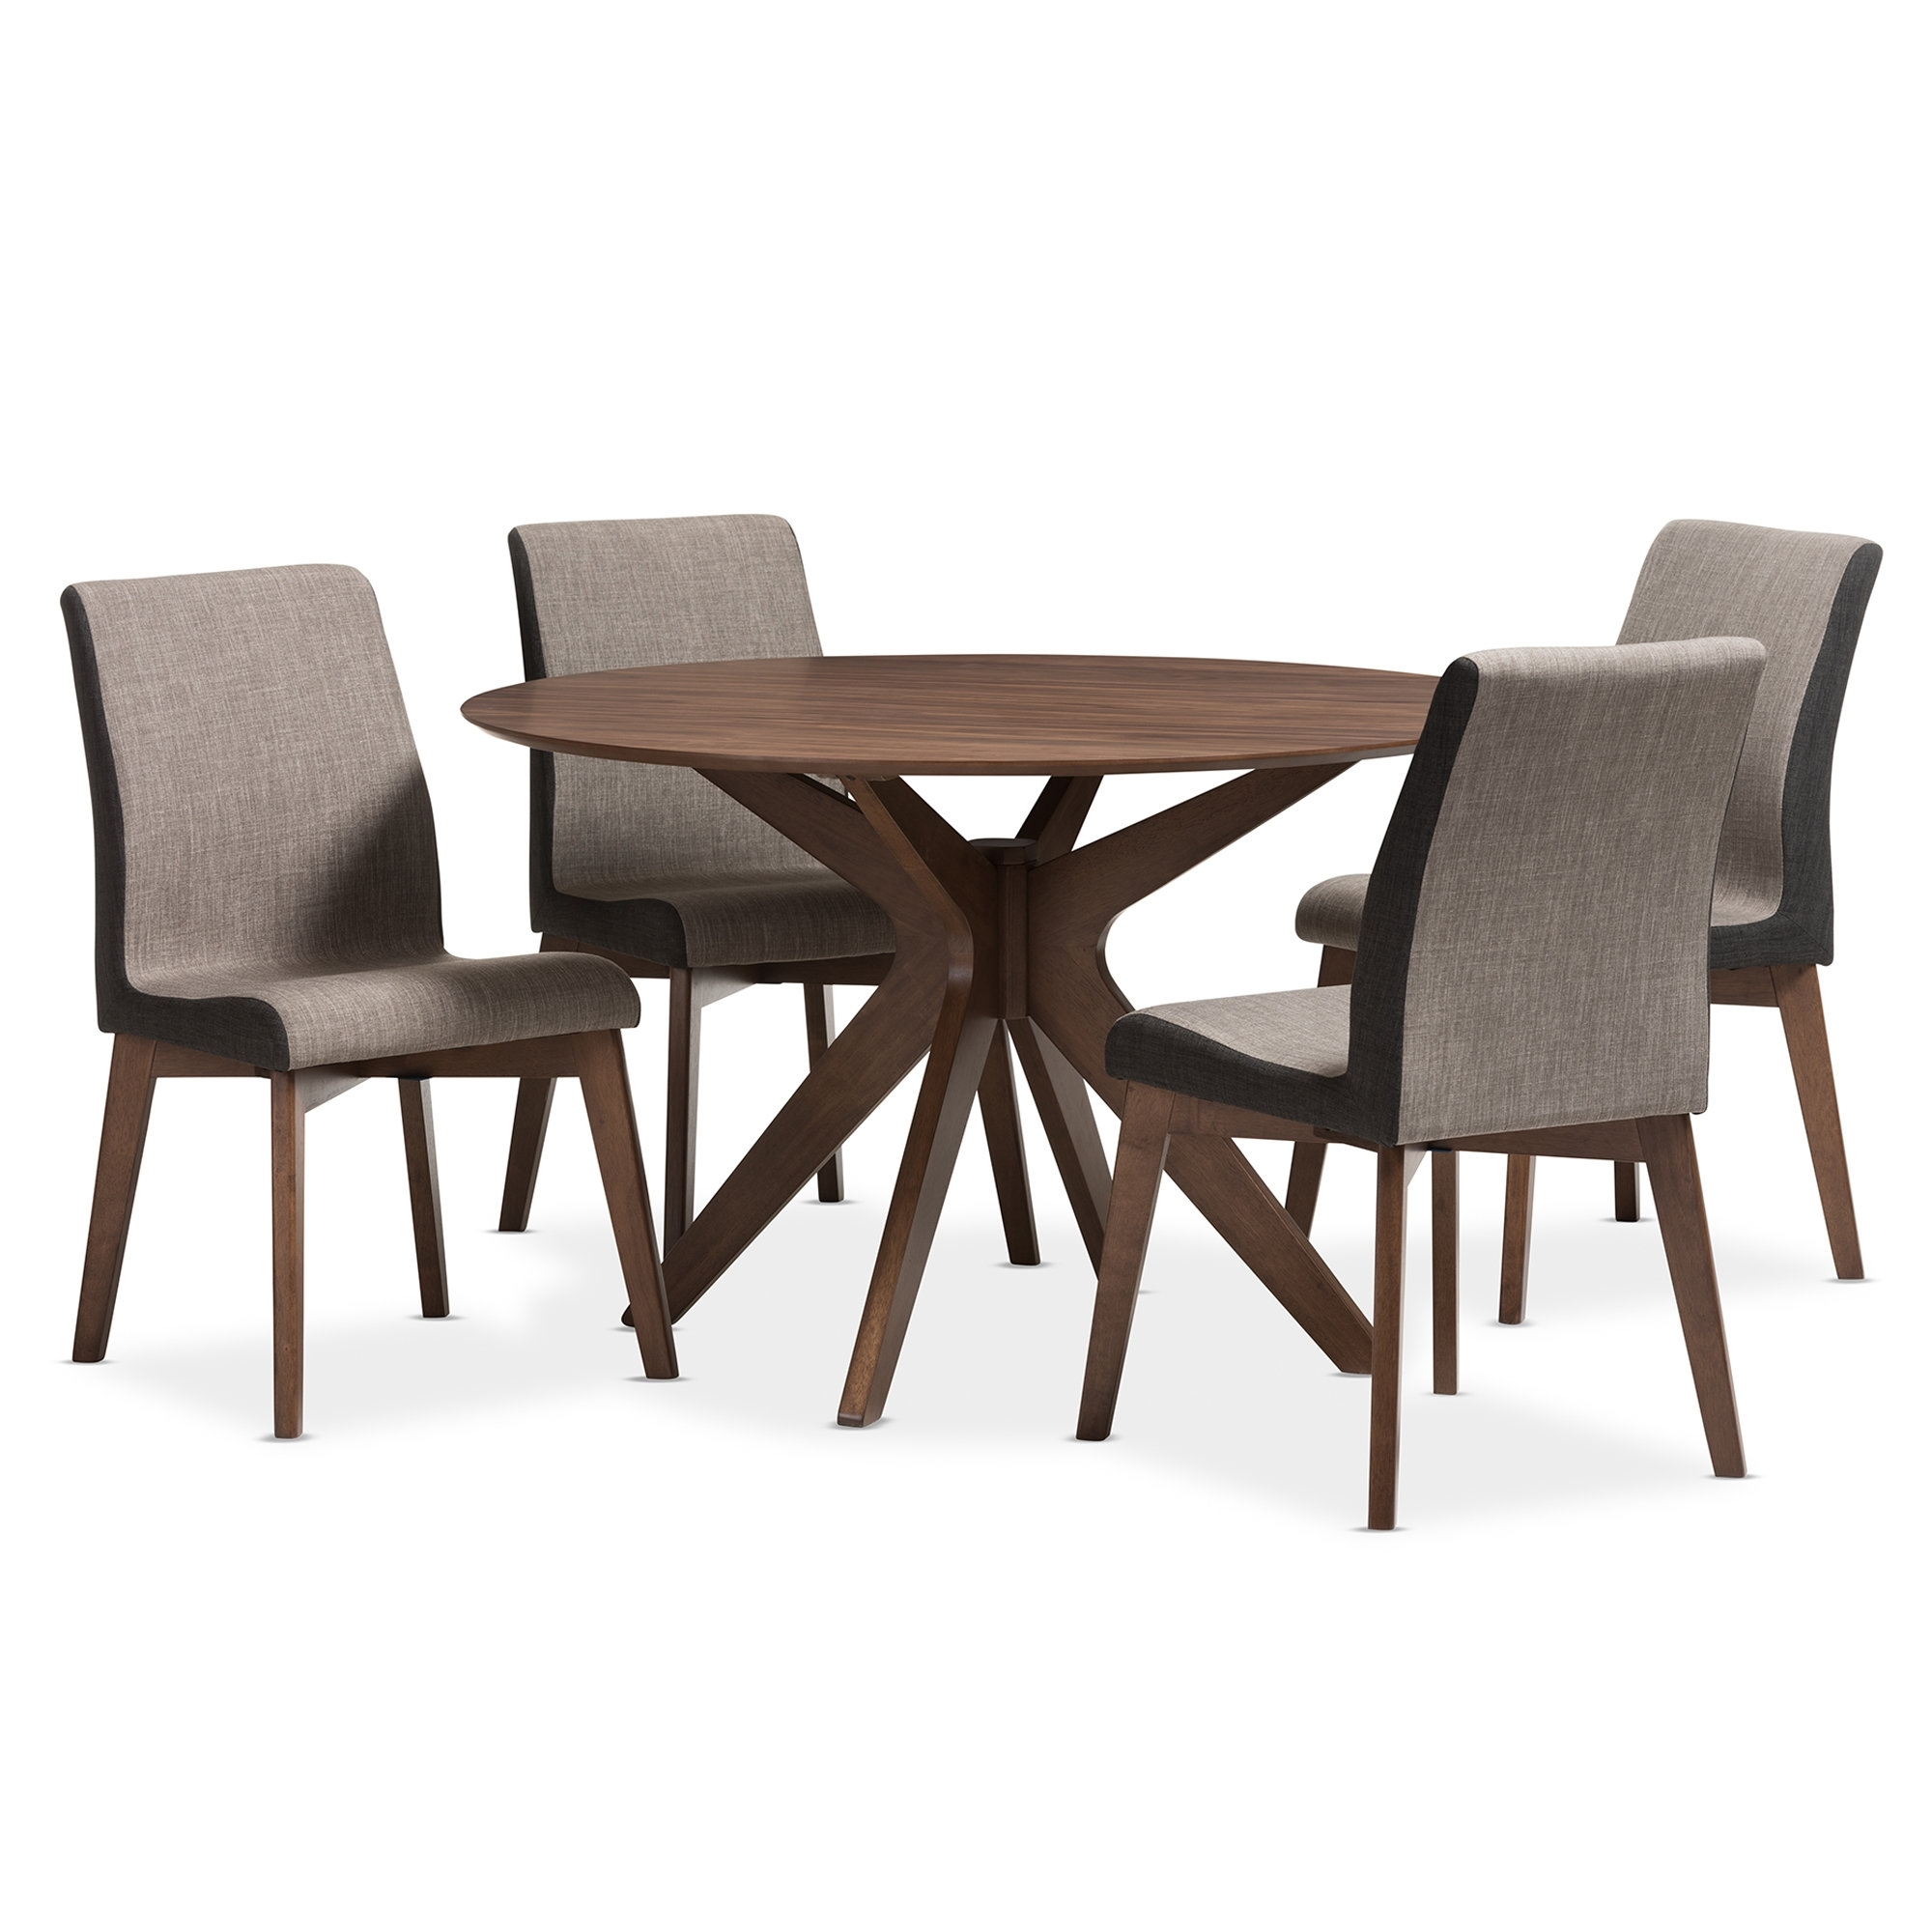 Popular Wholesale Interiors Kimberly Mid Century Modern Wood Round 5 Piece Within Laurent 5 Piece Round Dining Sets With Wood Chairs (Gallery 13 of 25)